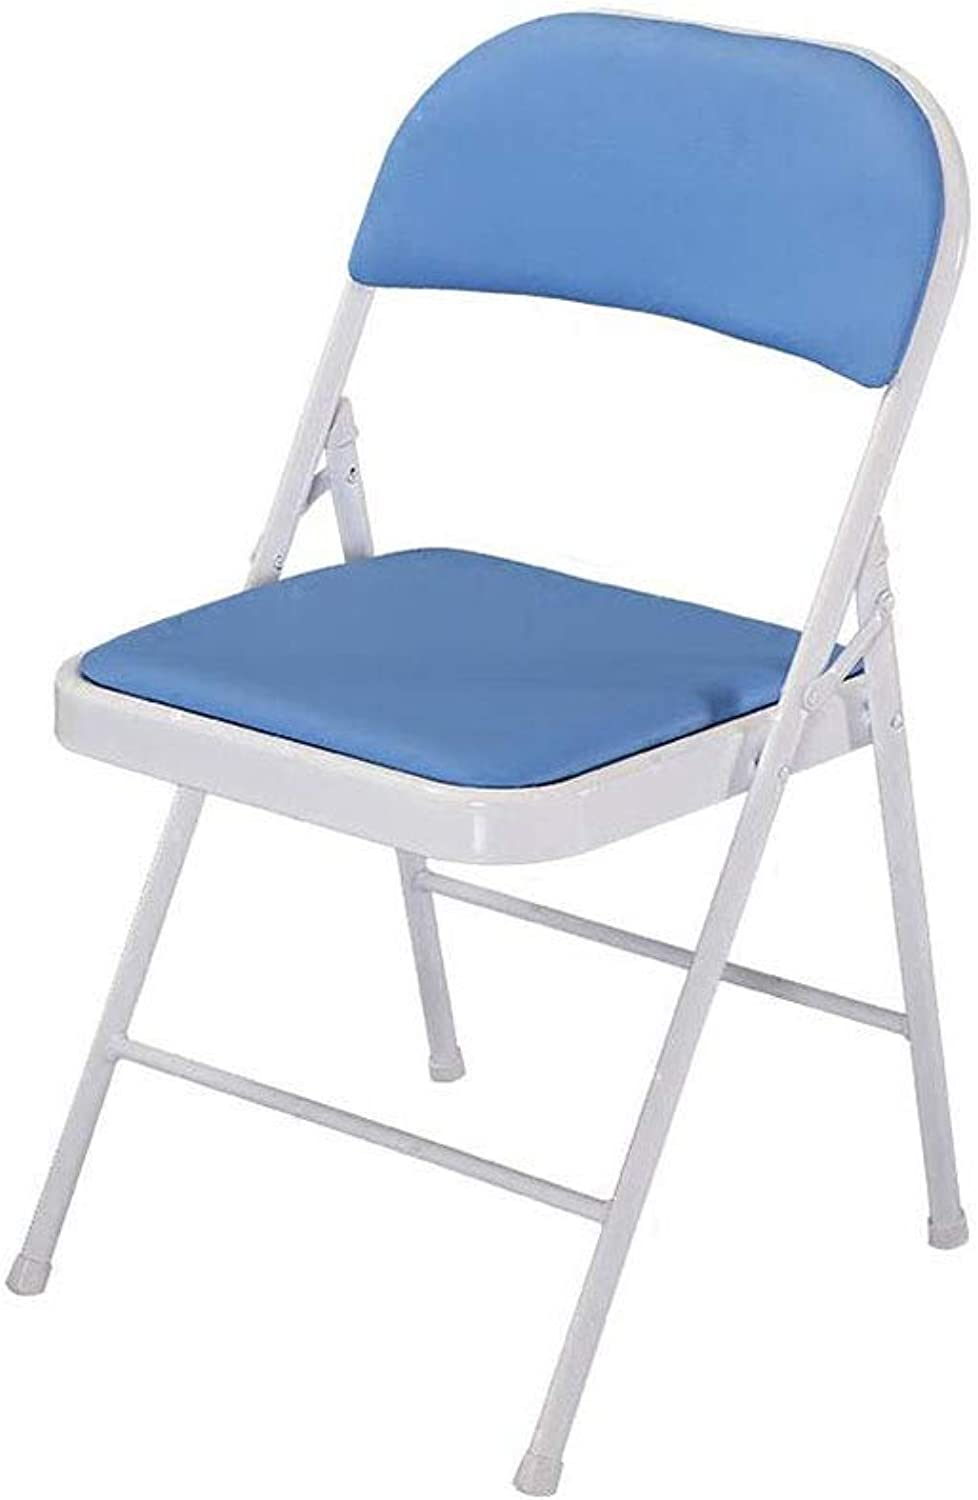 Folding Chair Portable Desk Chair Student Training Backrest Chair Steel Metal & Faux Leather